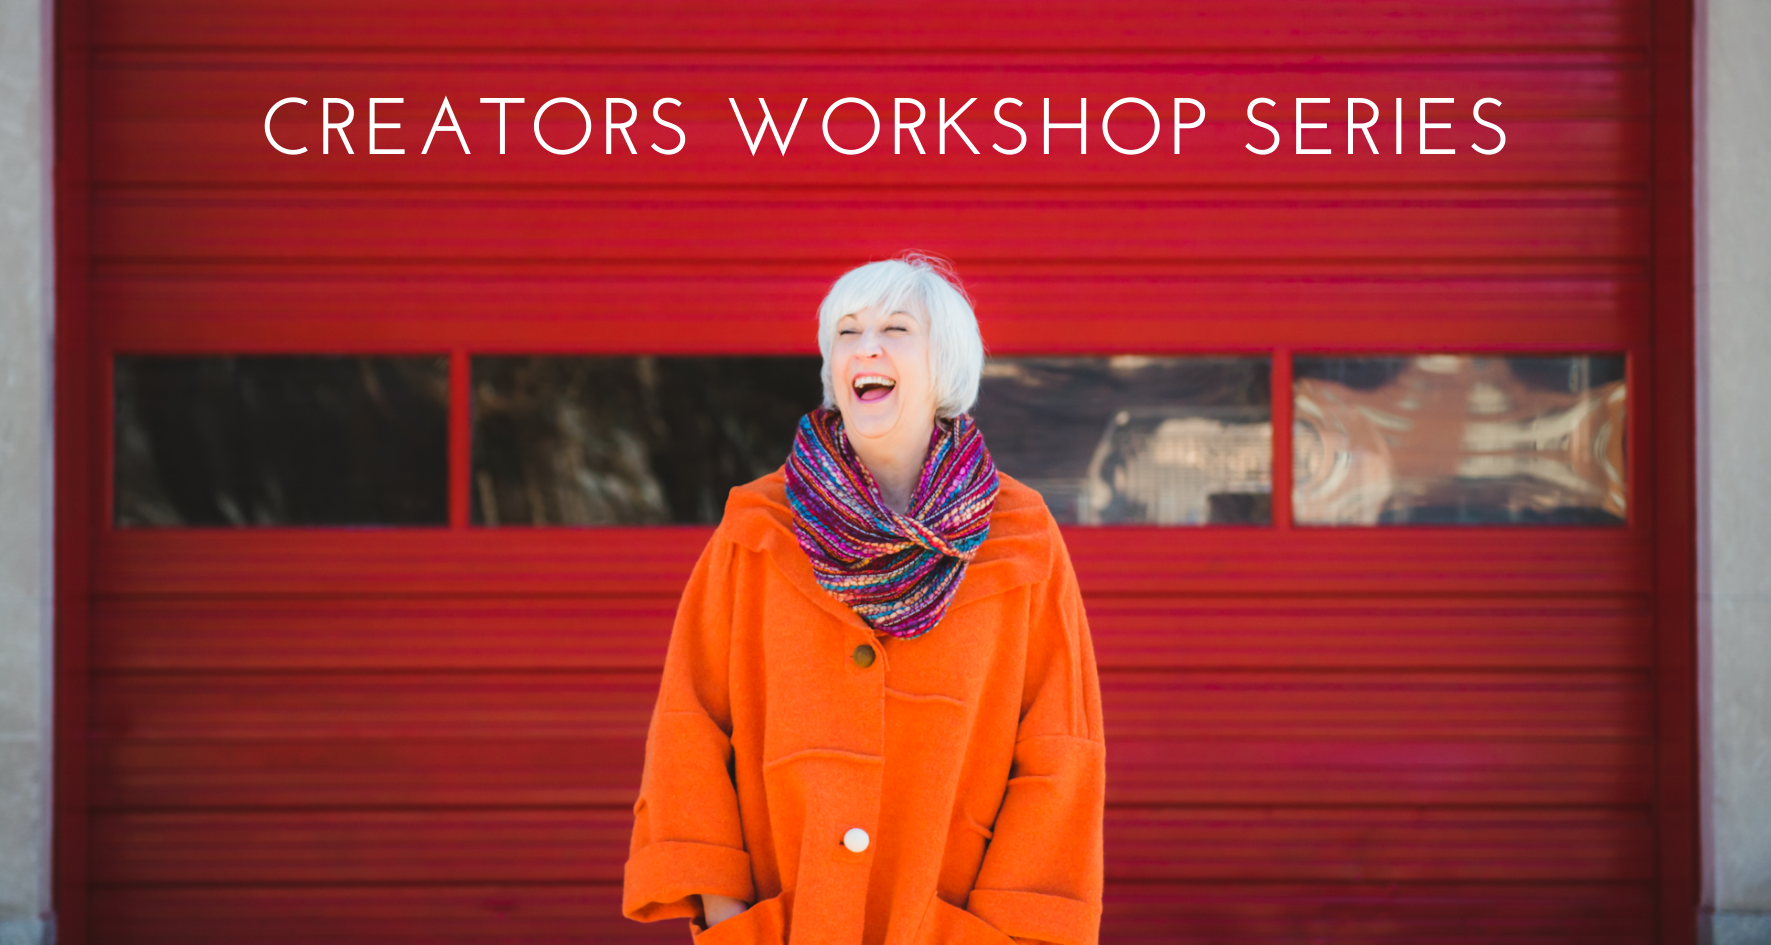 Creators Workshop Series